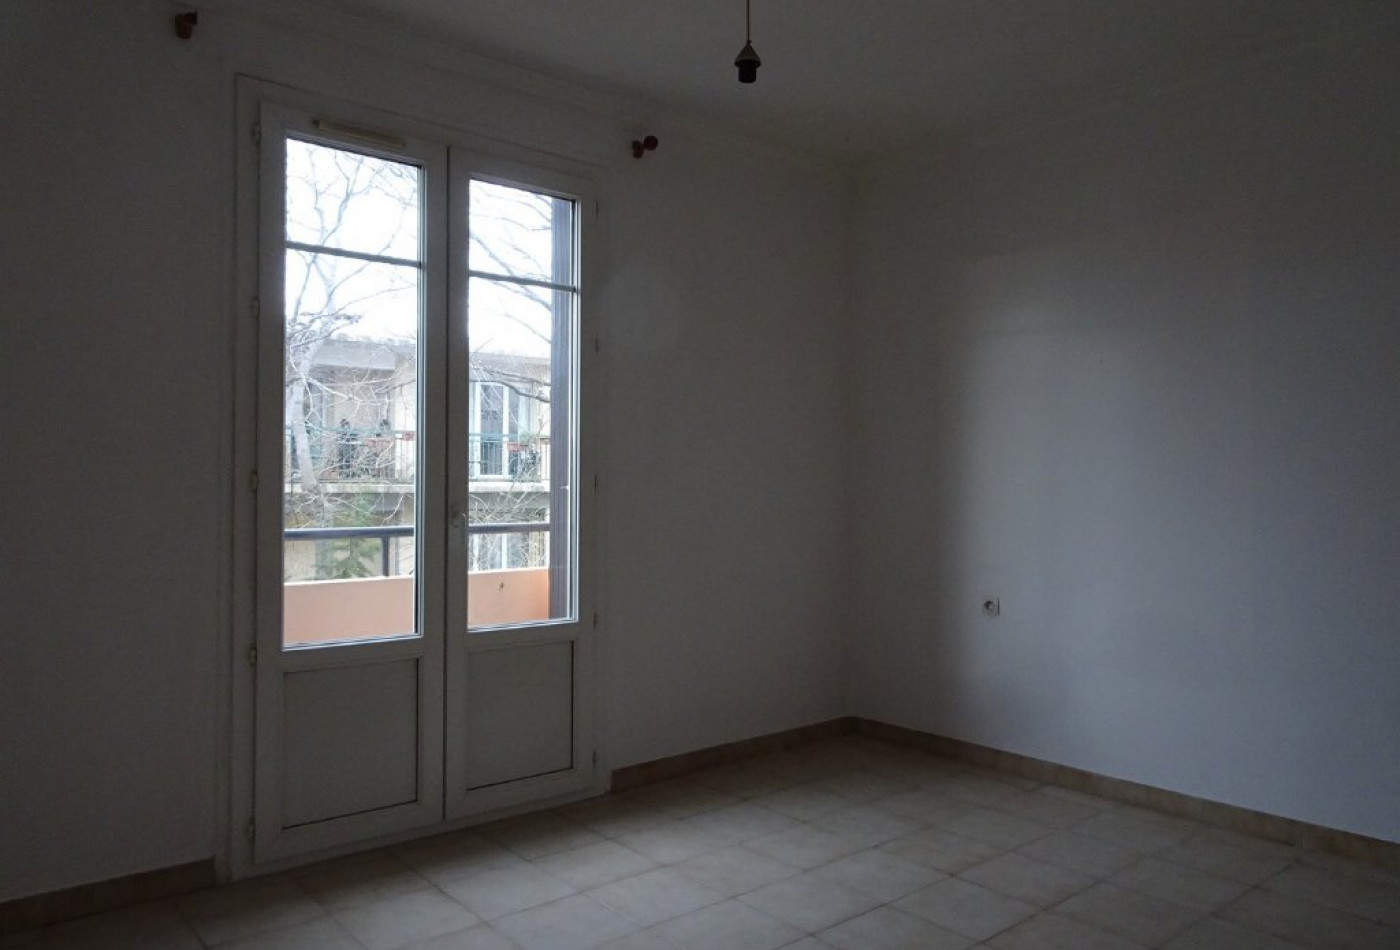 Appartement en location montpellier rf 341681428 for Appartement en location